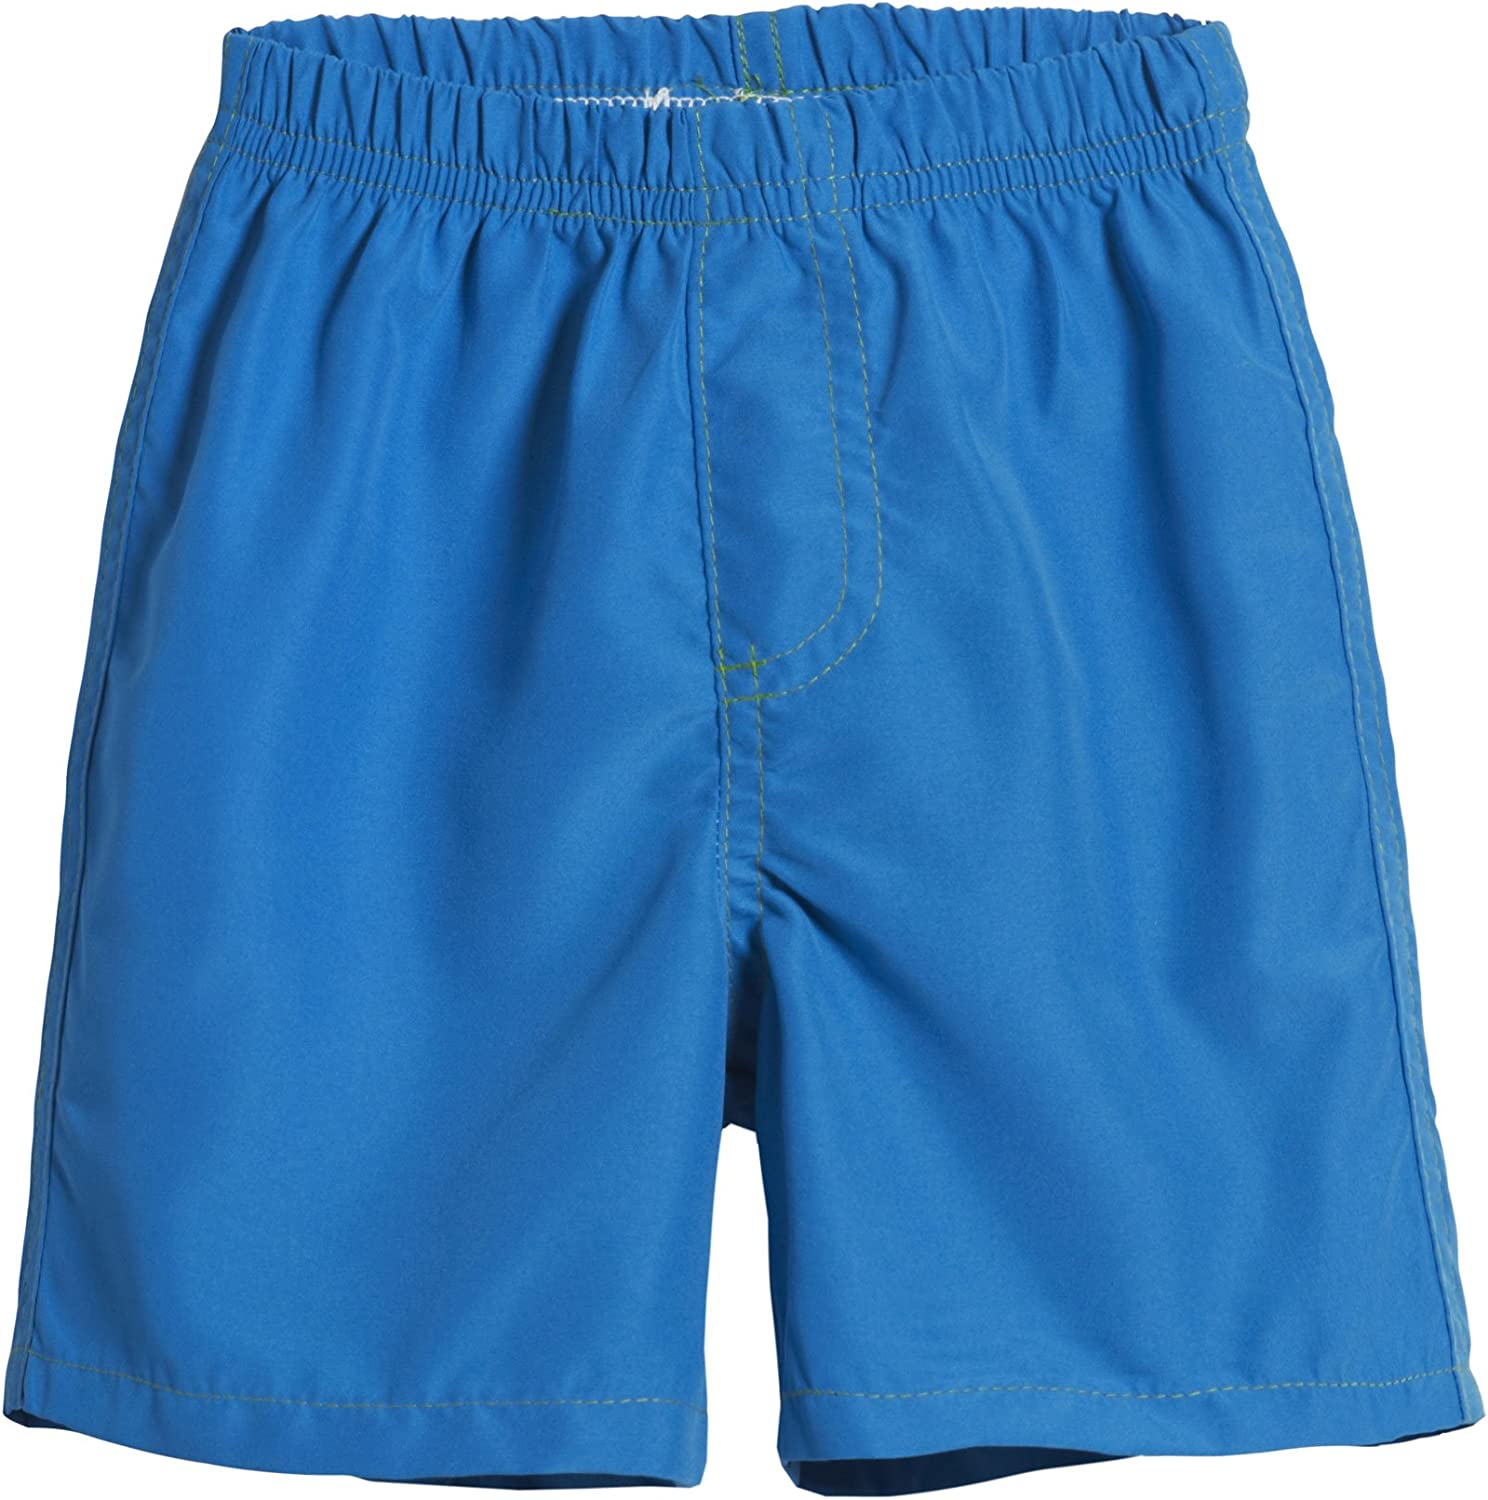 City Threads Boys Solid Swimsuit Swim Trunks with Elastic Waist Made in USA